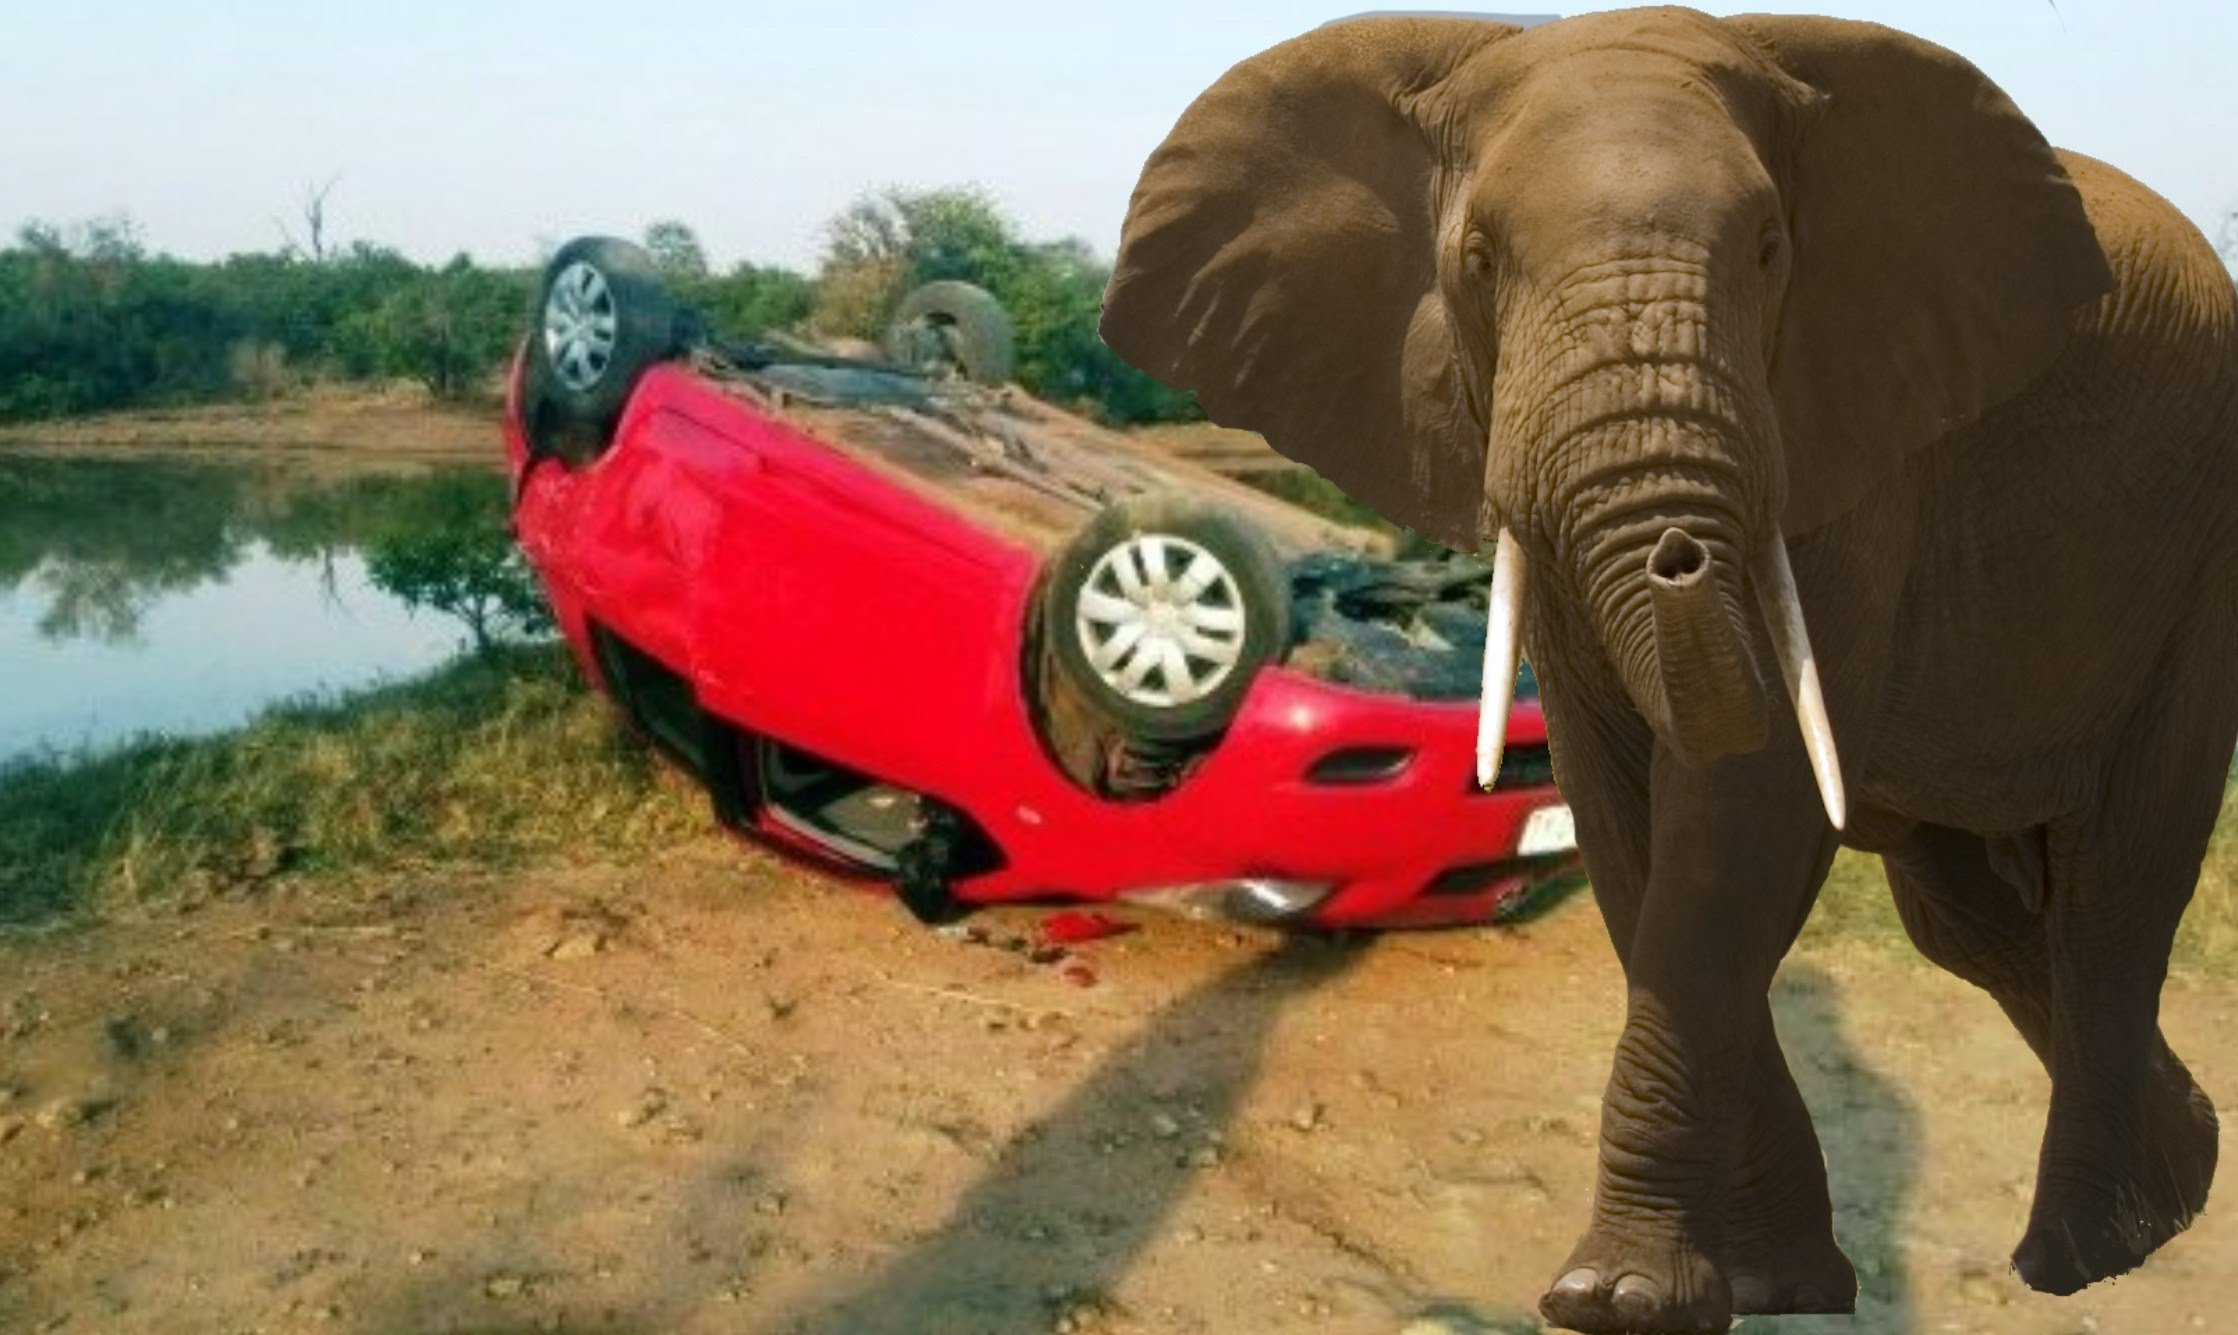 Elephant Attacks And Flips Car in Kruger Park. Latest Attack. - YouTube